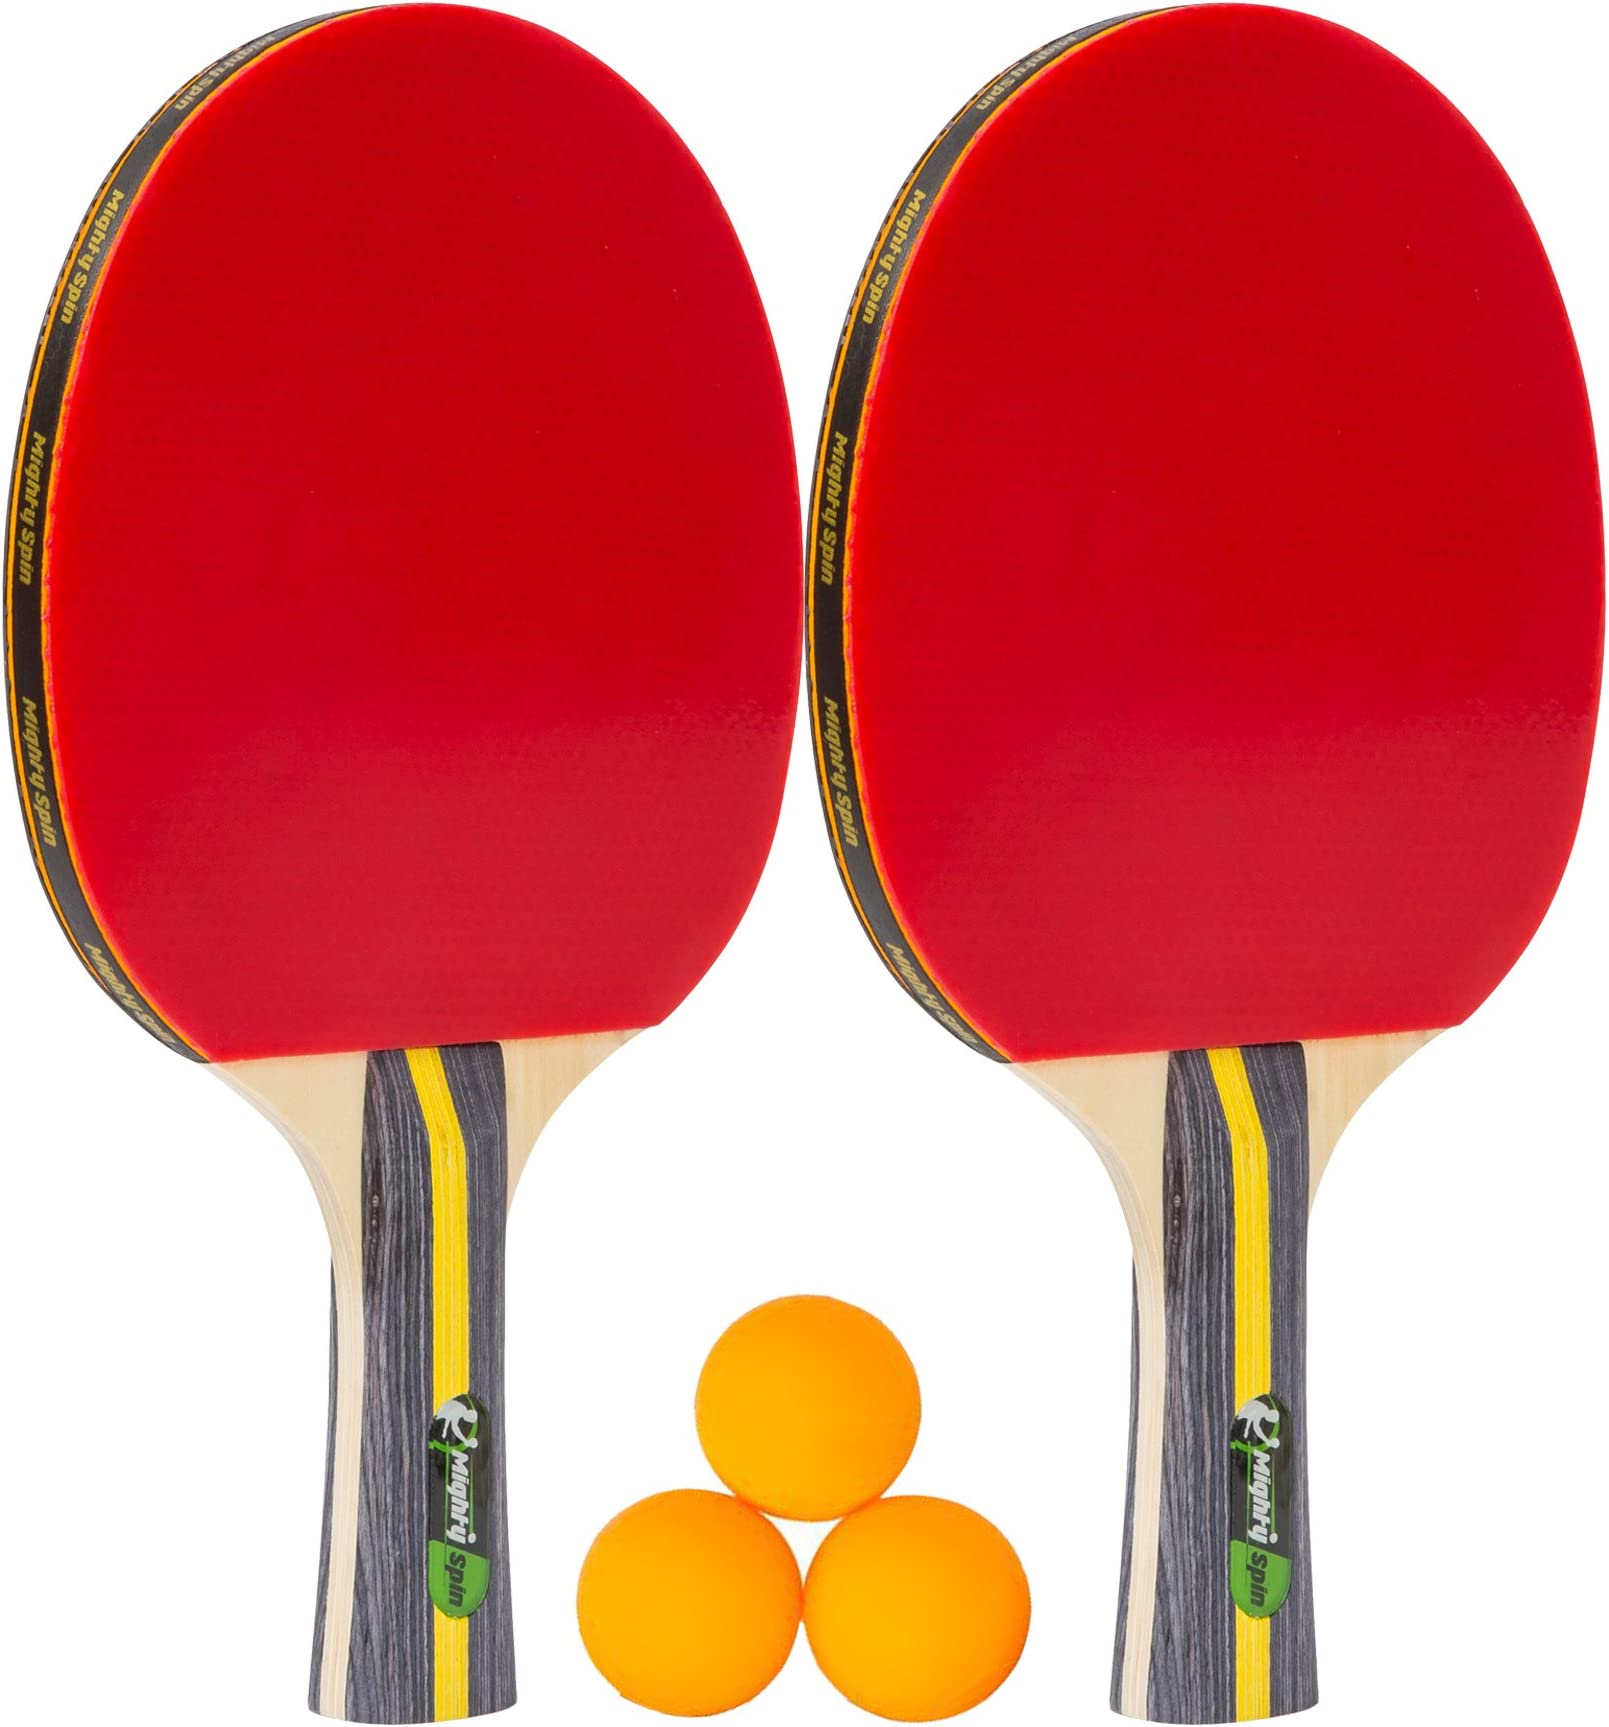 Top rated  sc 1 st  Amazon.com & Tabletop Table Tennis   Amazon.com: Leisure Sports u0026 Game Room